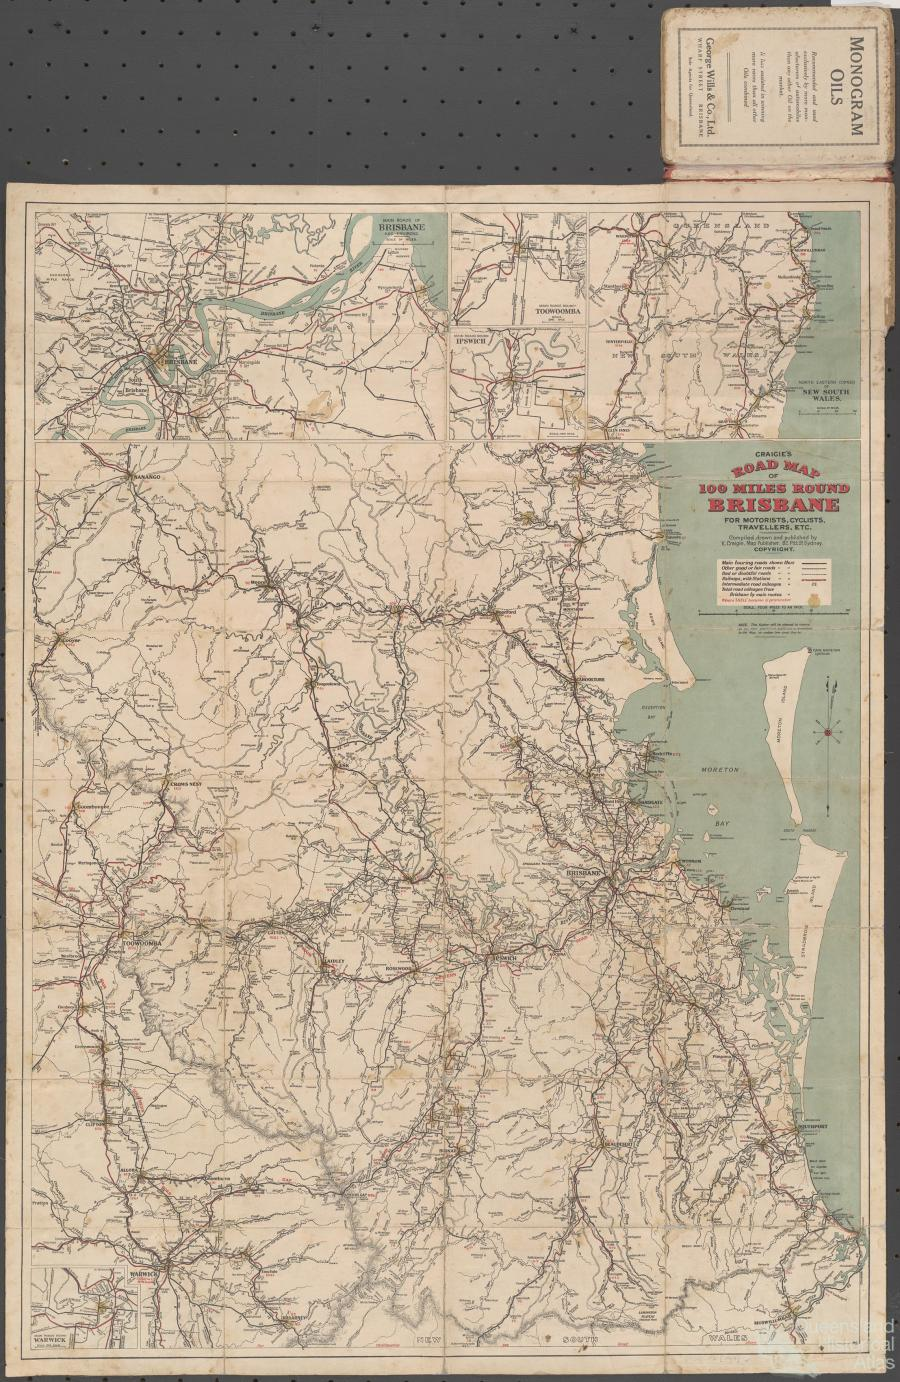 Craigies road map 100 miles round Brisbane 1914 Queensland